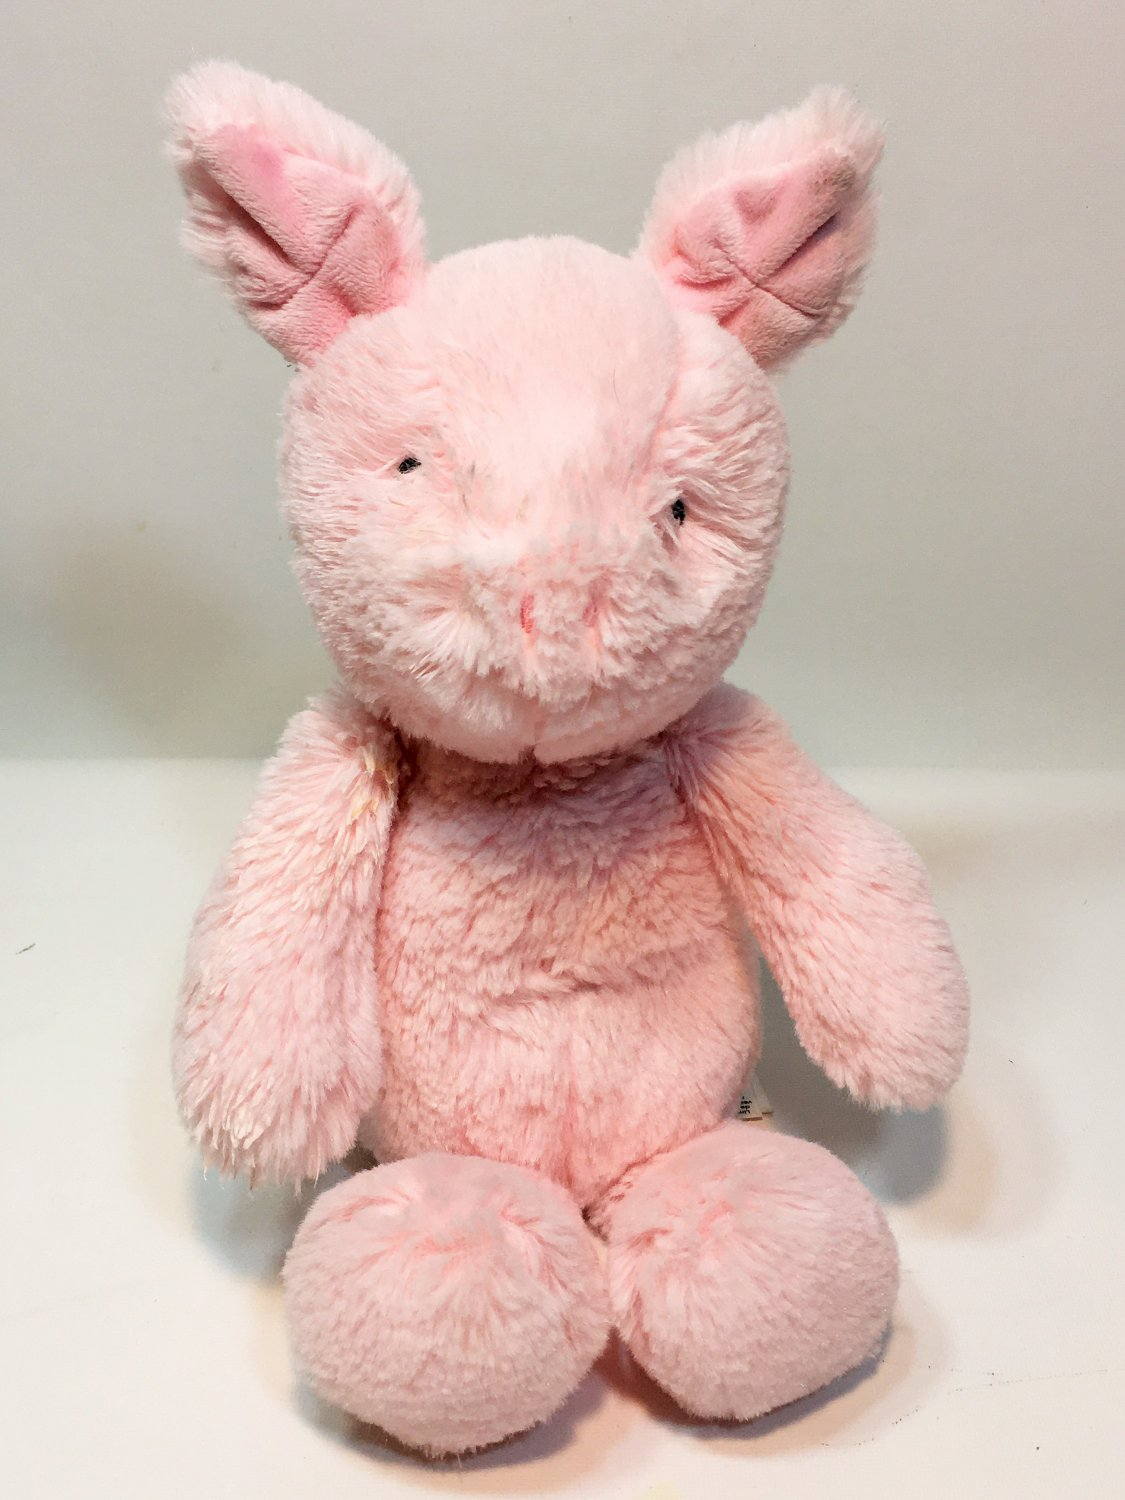 Carter's PIG Pink Plush Piggy Baby Stuffed Animal Toy Hog Curly Tail 66922